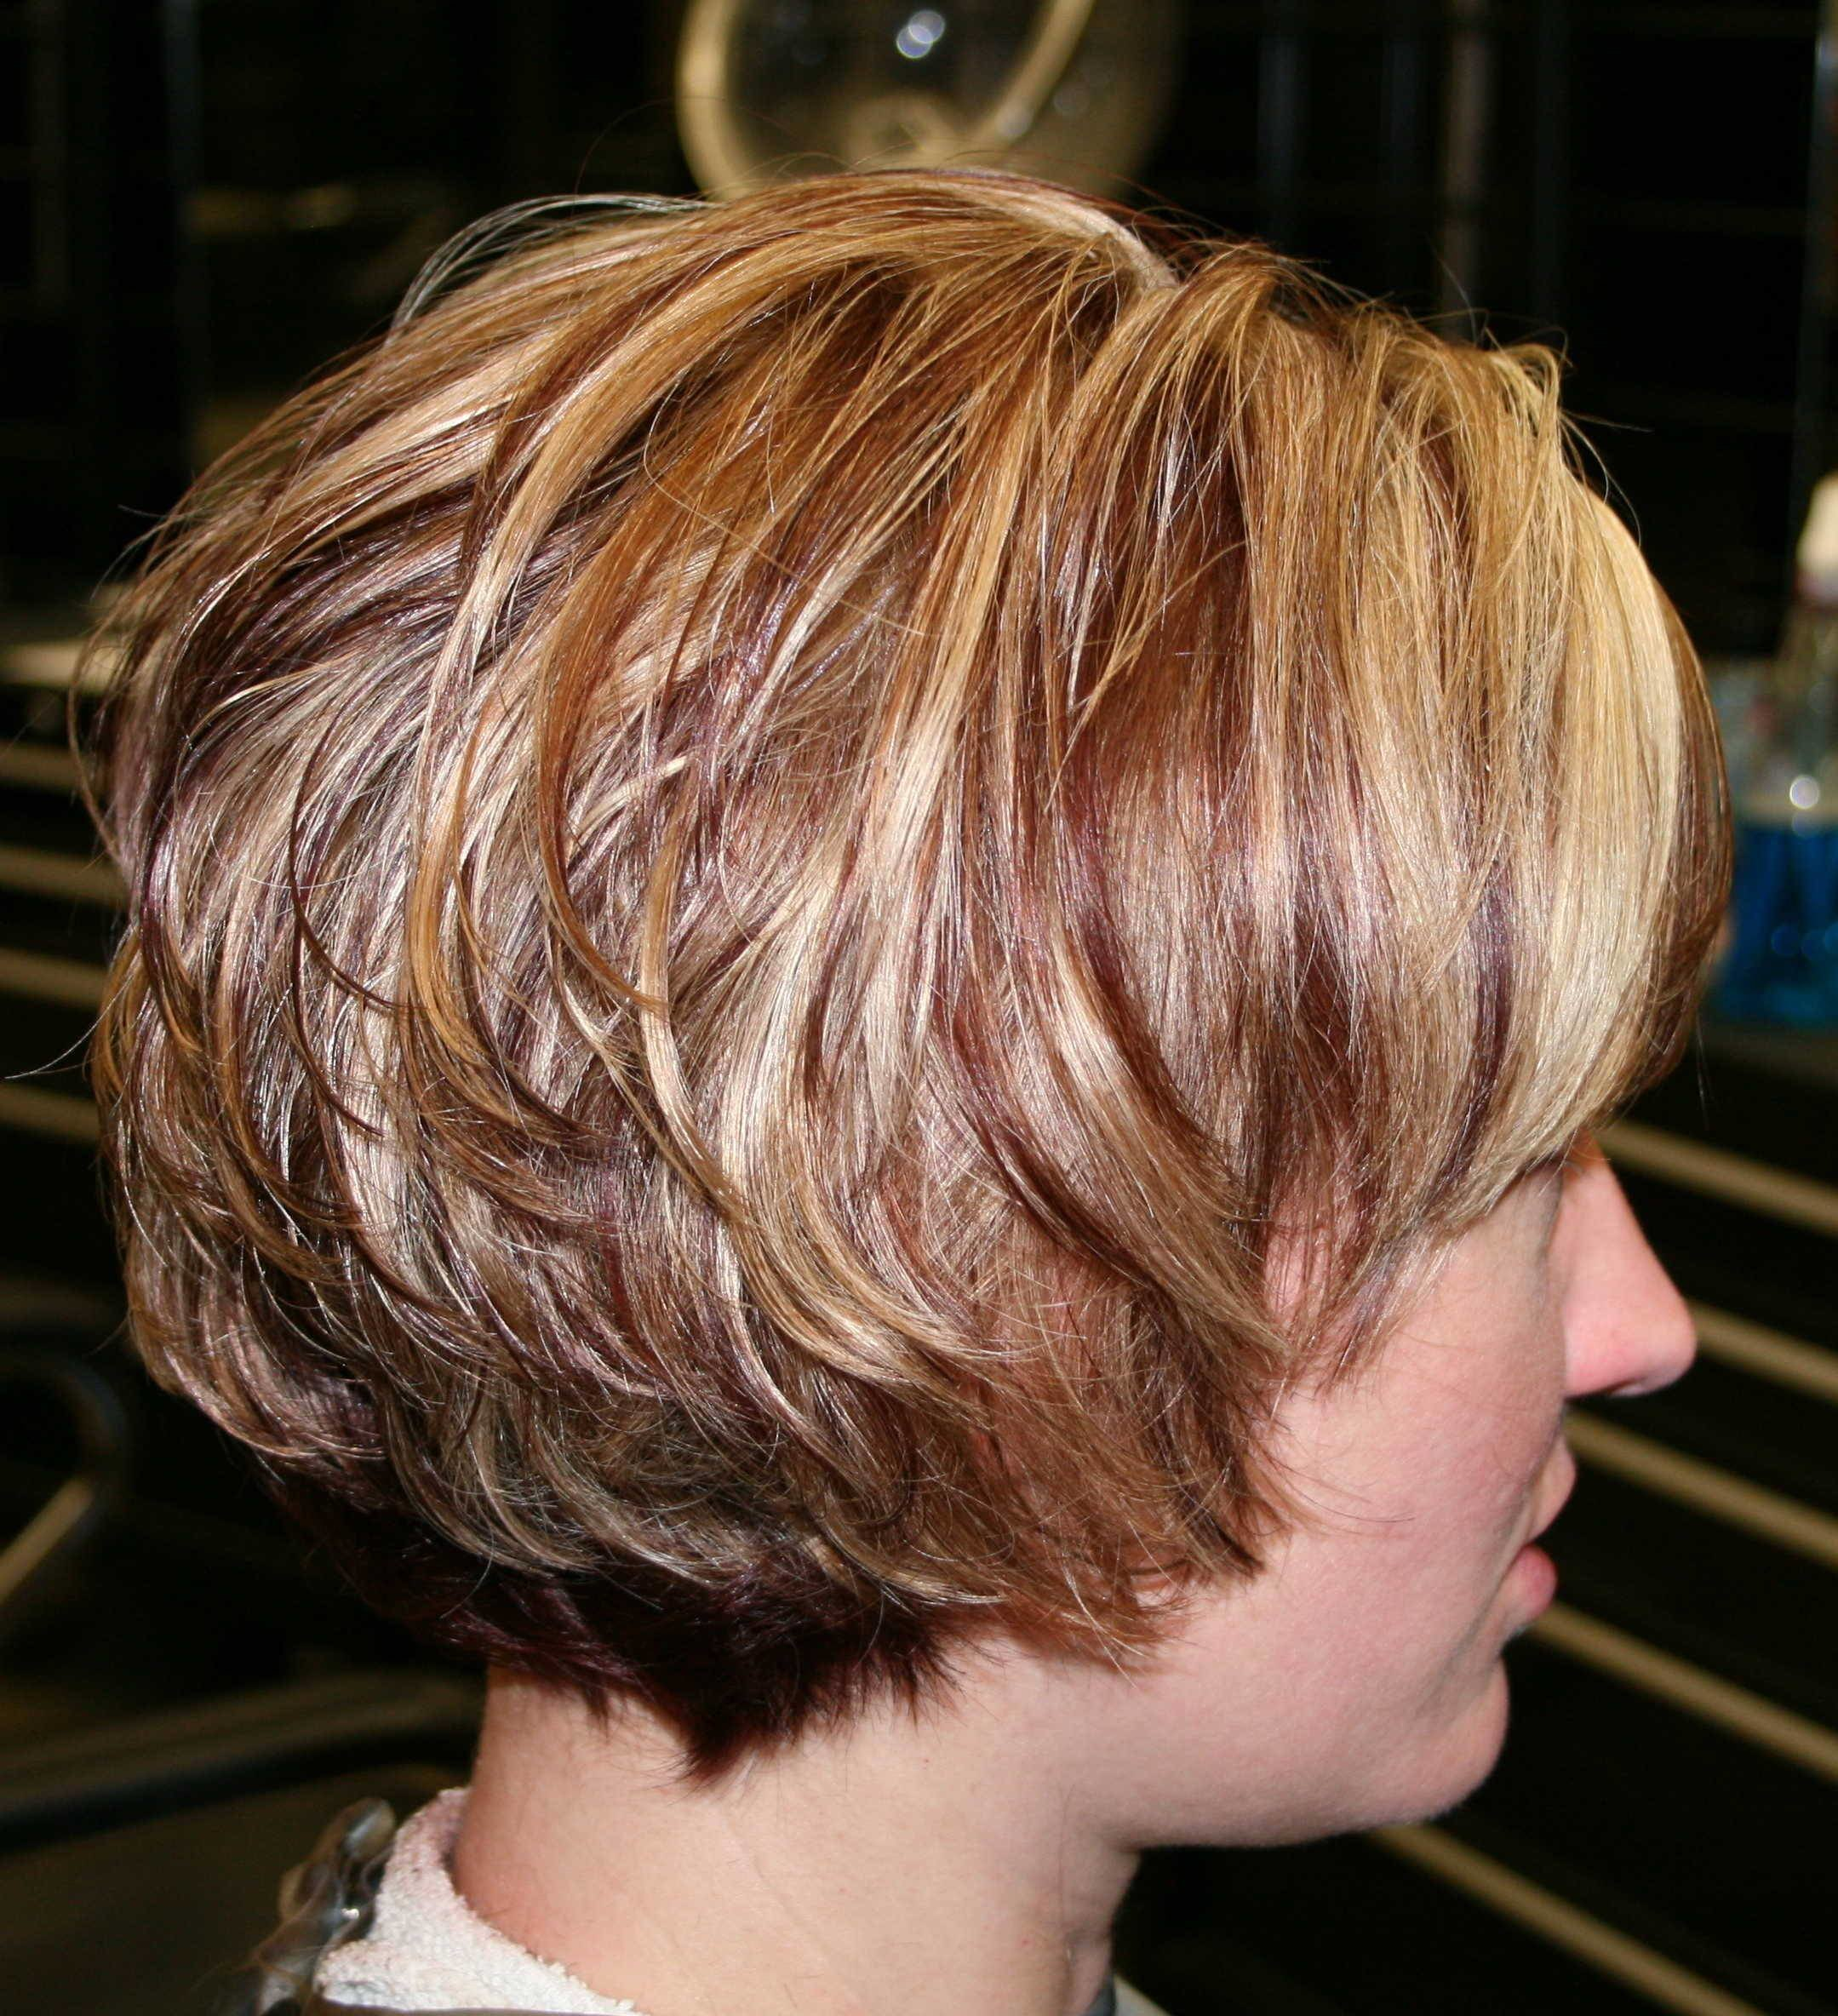 The Best Short Layered Bob Hairstyles Front And Back View New Pictures